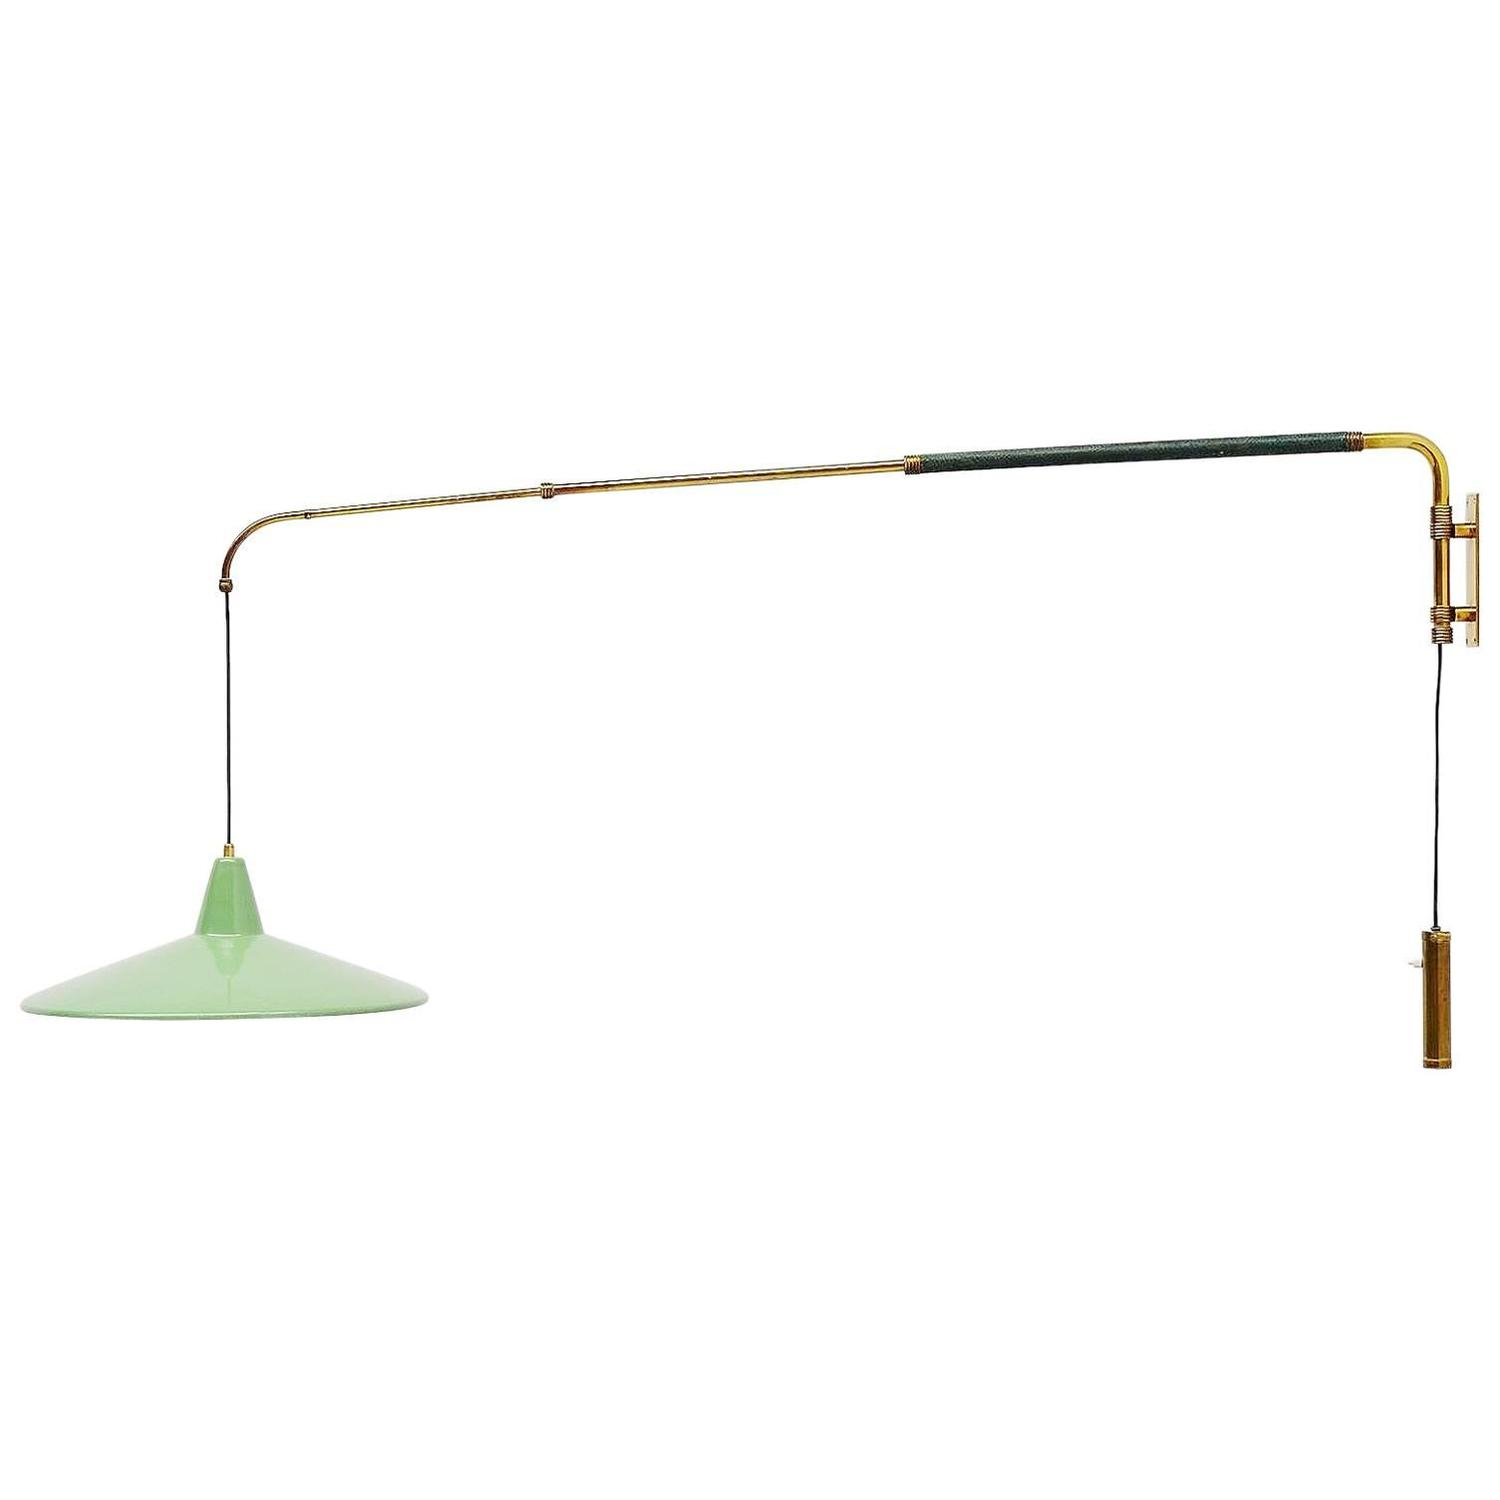 Wall Lamps Extendable : Arredoluce Attributed Extendable Wall Lamp, Italy, 1950 For Sale at 1stdibs